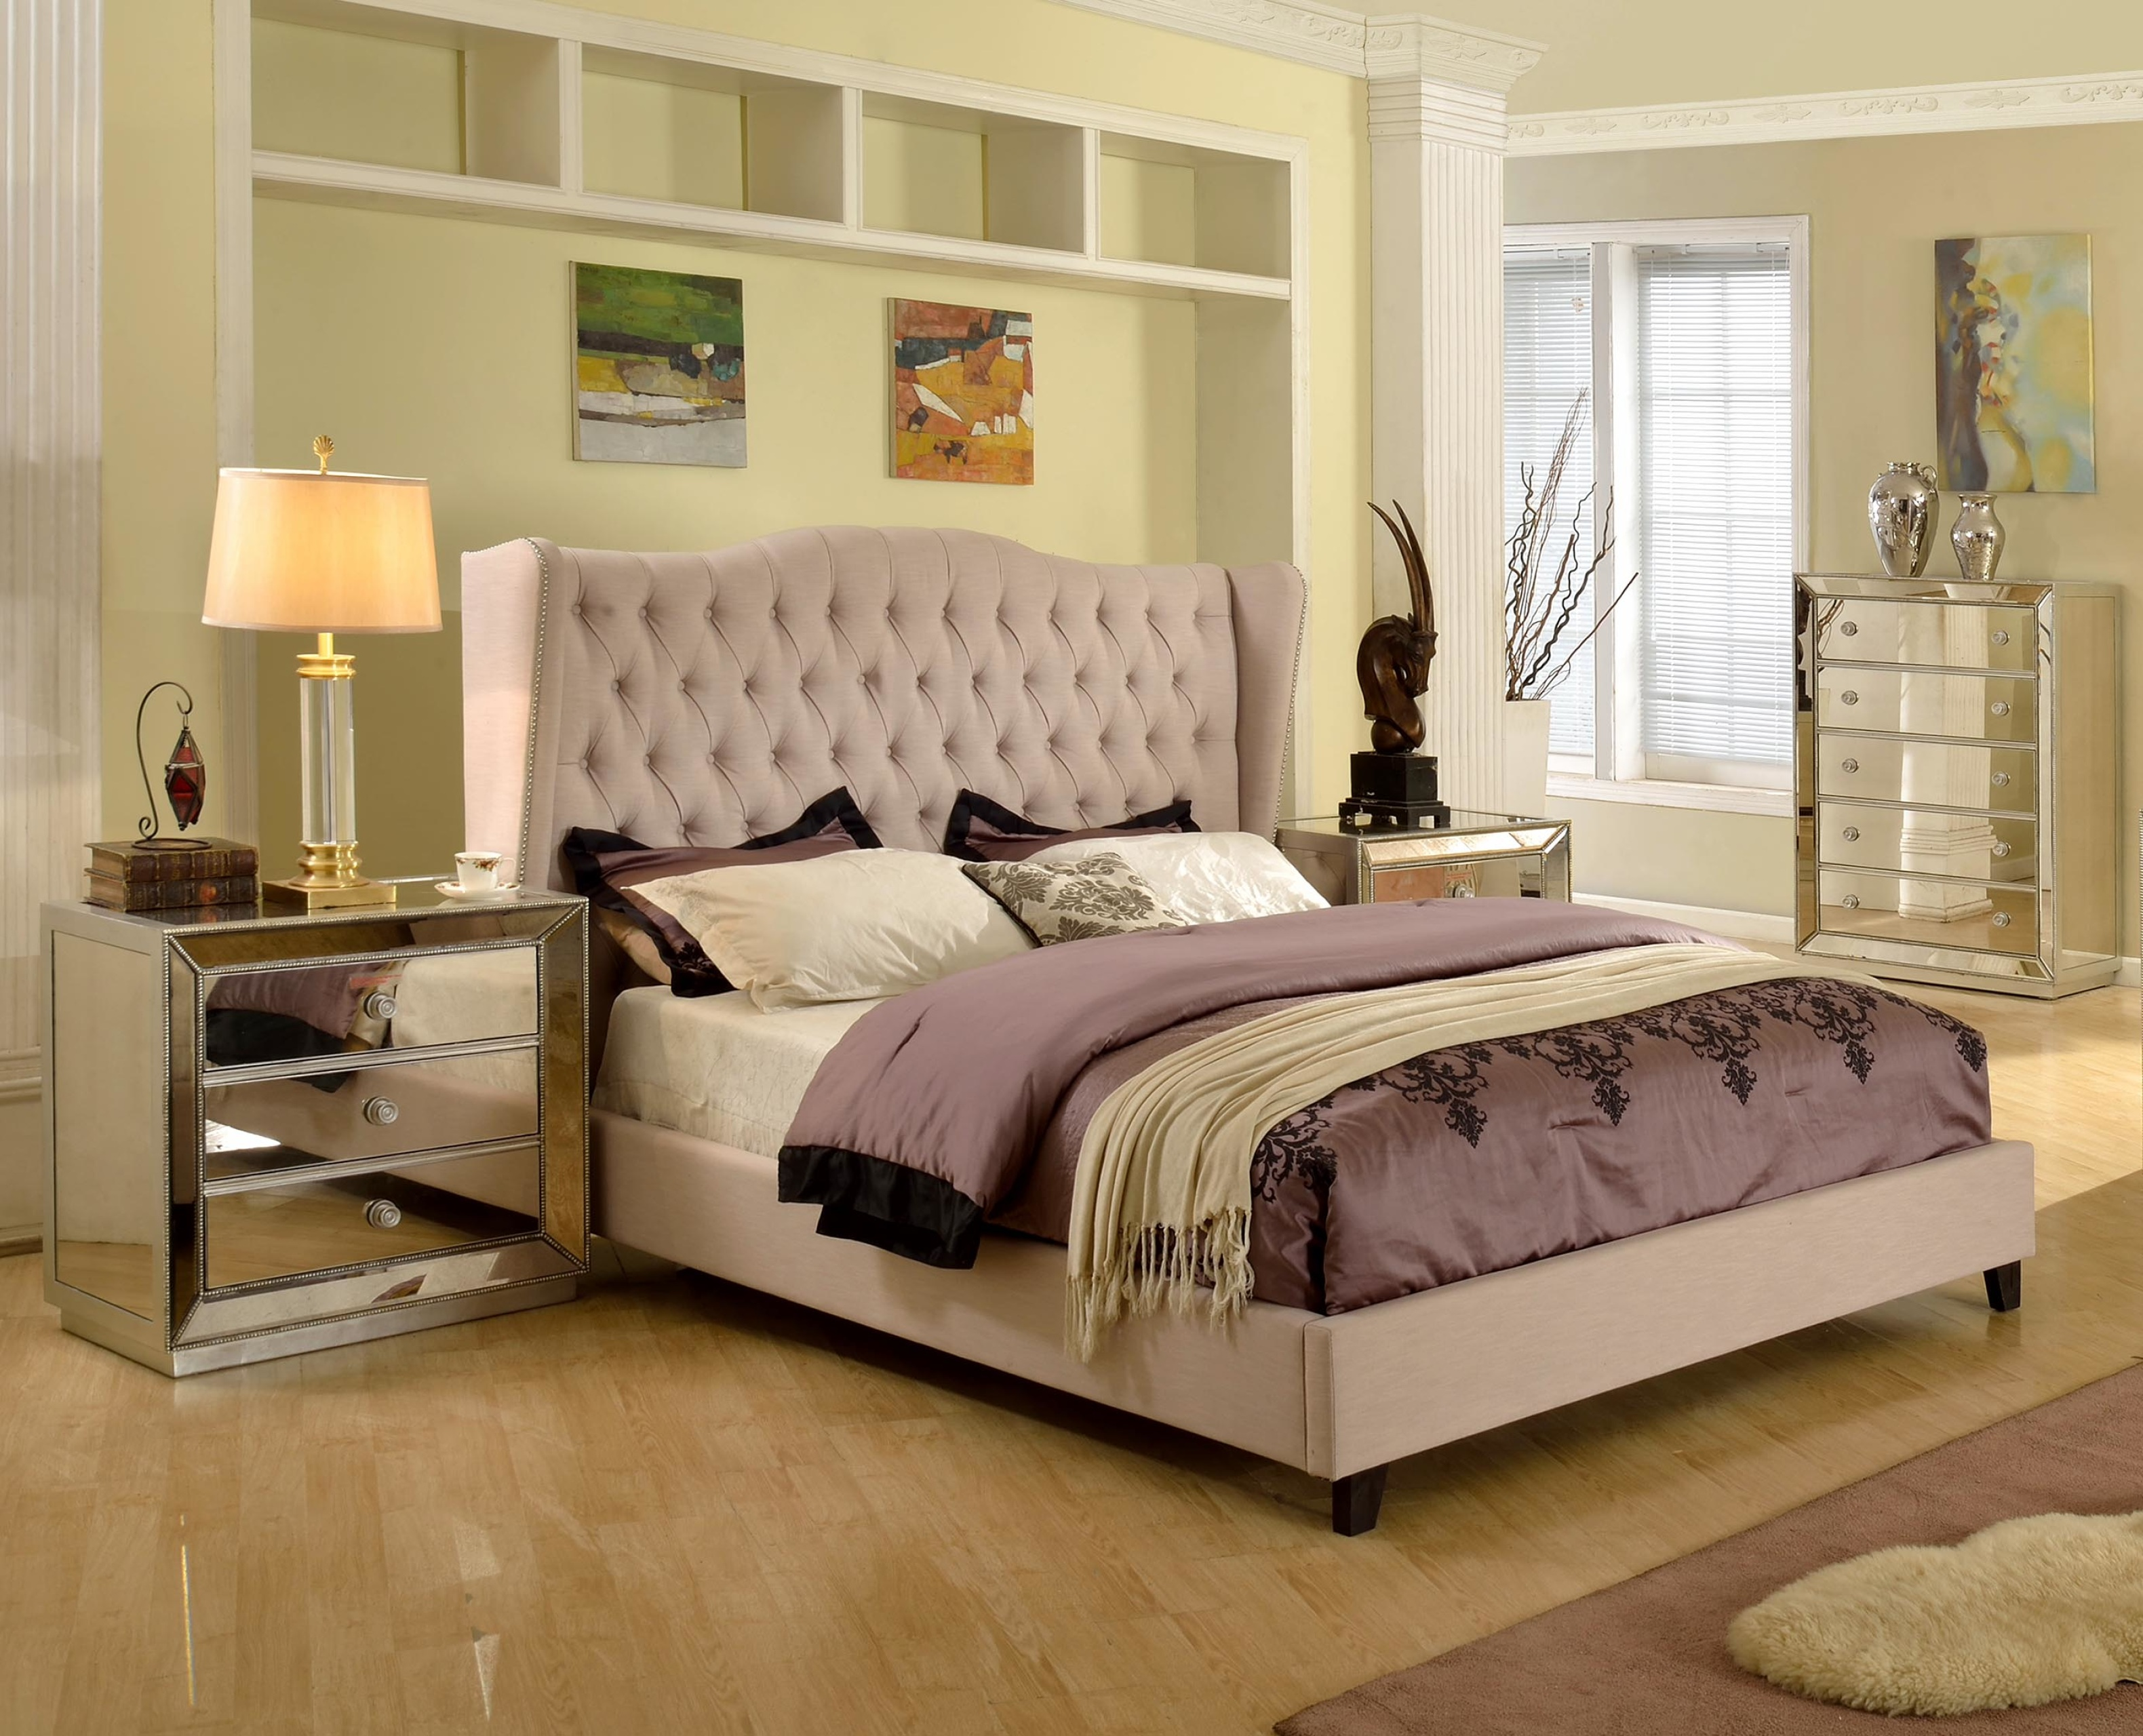 Contemporary Taupe Est King Size Bedroom Bed